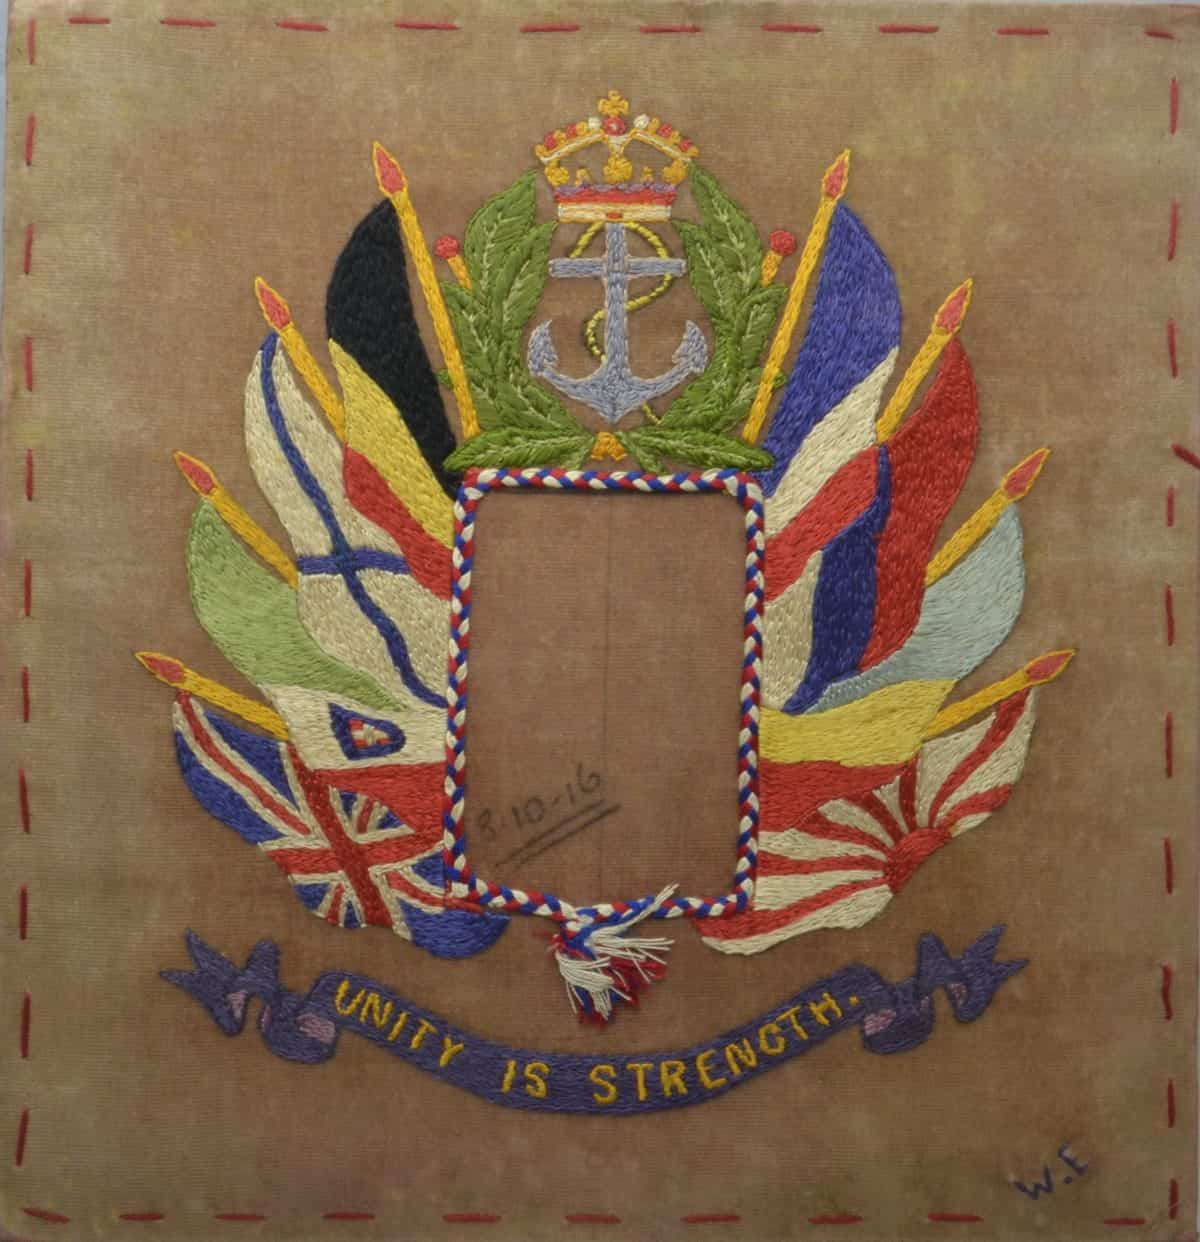 WW1 10 F5799 Embrodery - Flags of allied nations surmounted by anchor over motto Unity is strength 3.10.16 close-up